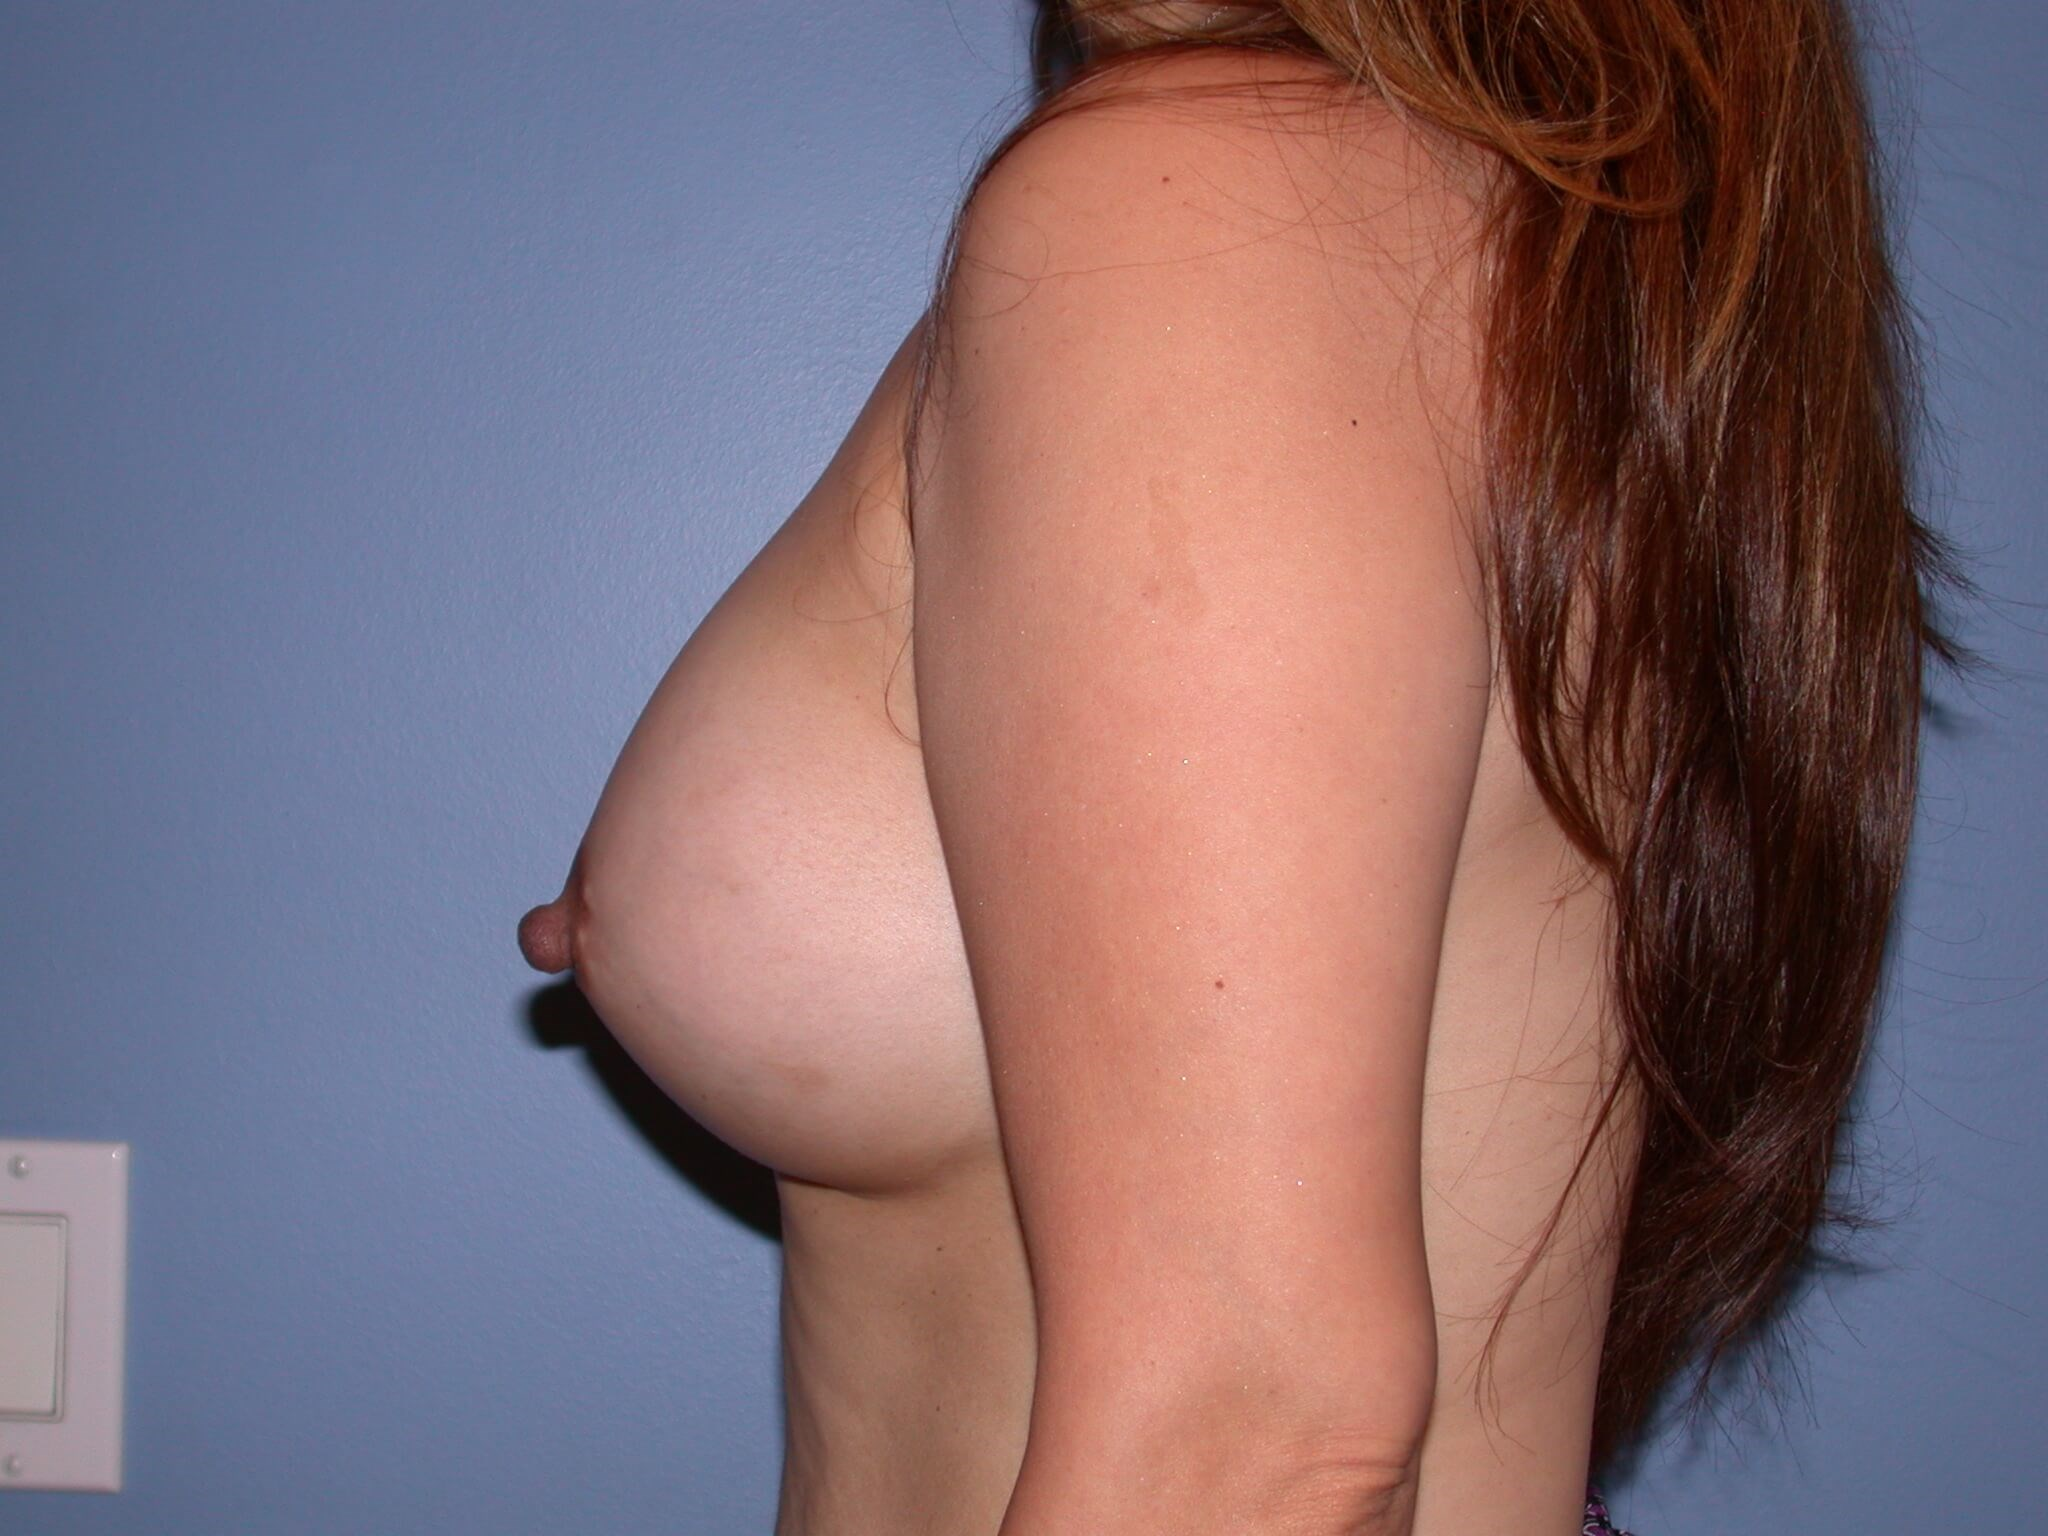 Bilateral Breast Augmentation After